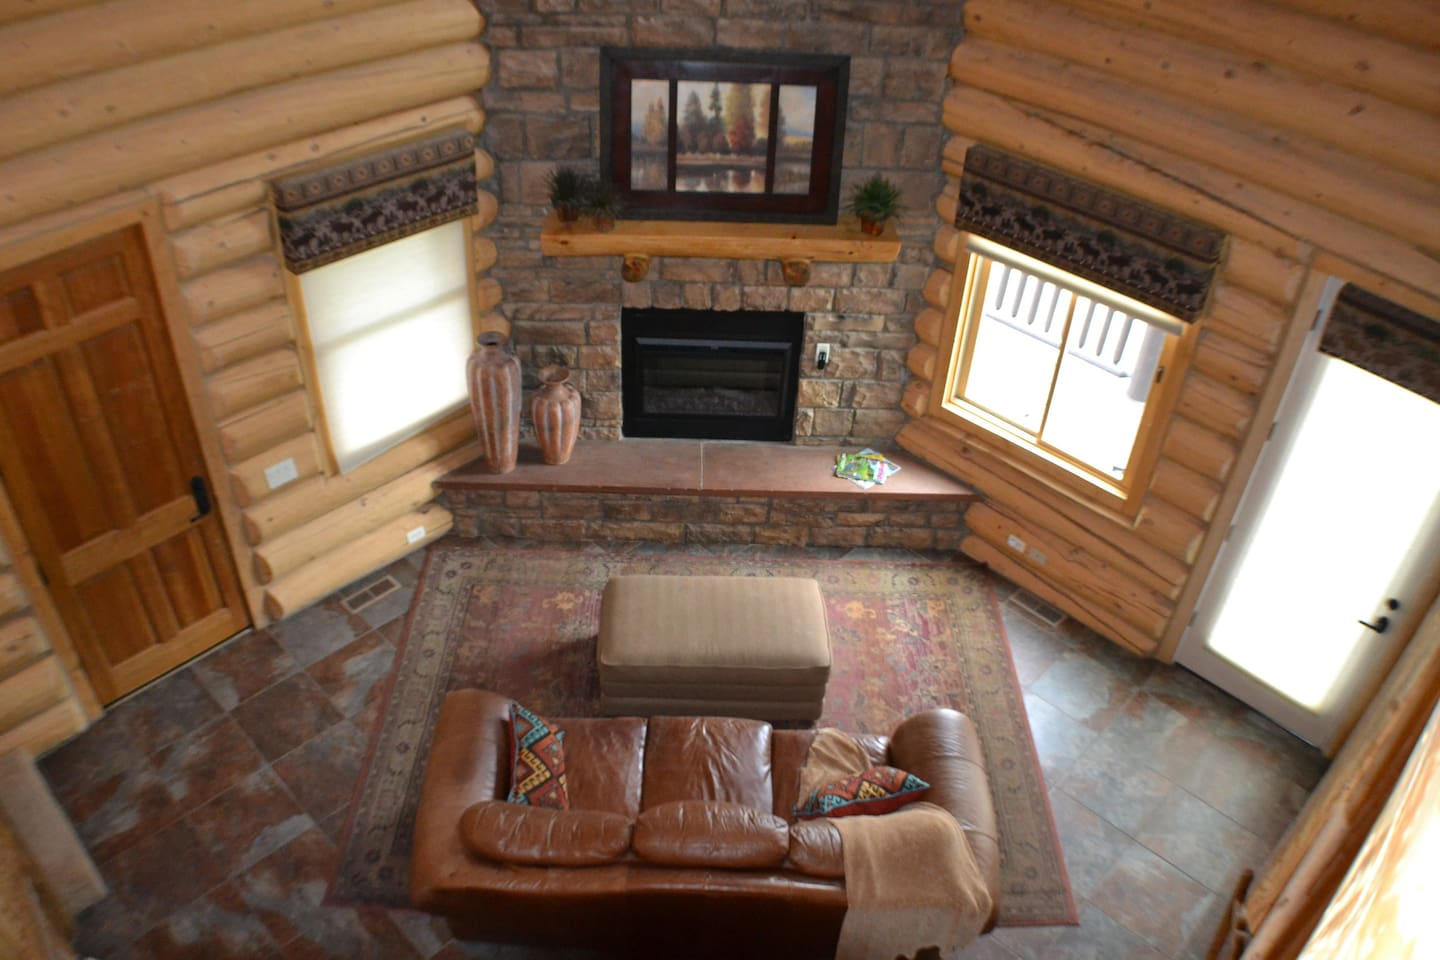 Living area with couch and ottoman.  The electric fire place will keep most of the house warm and cozy.